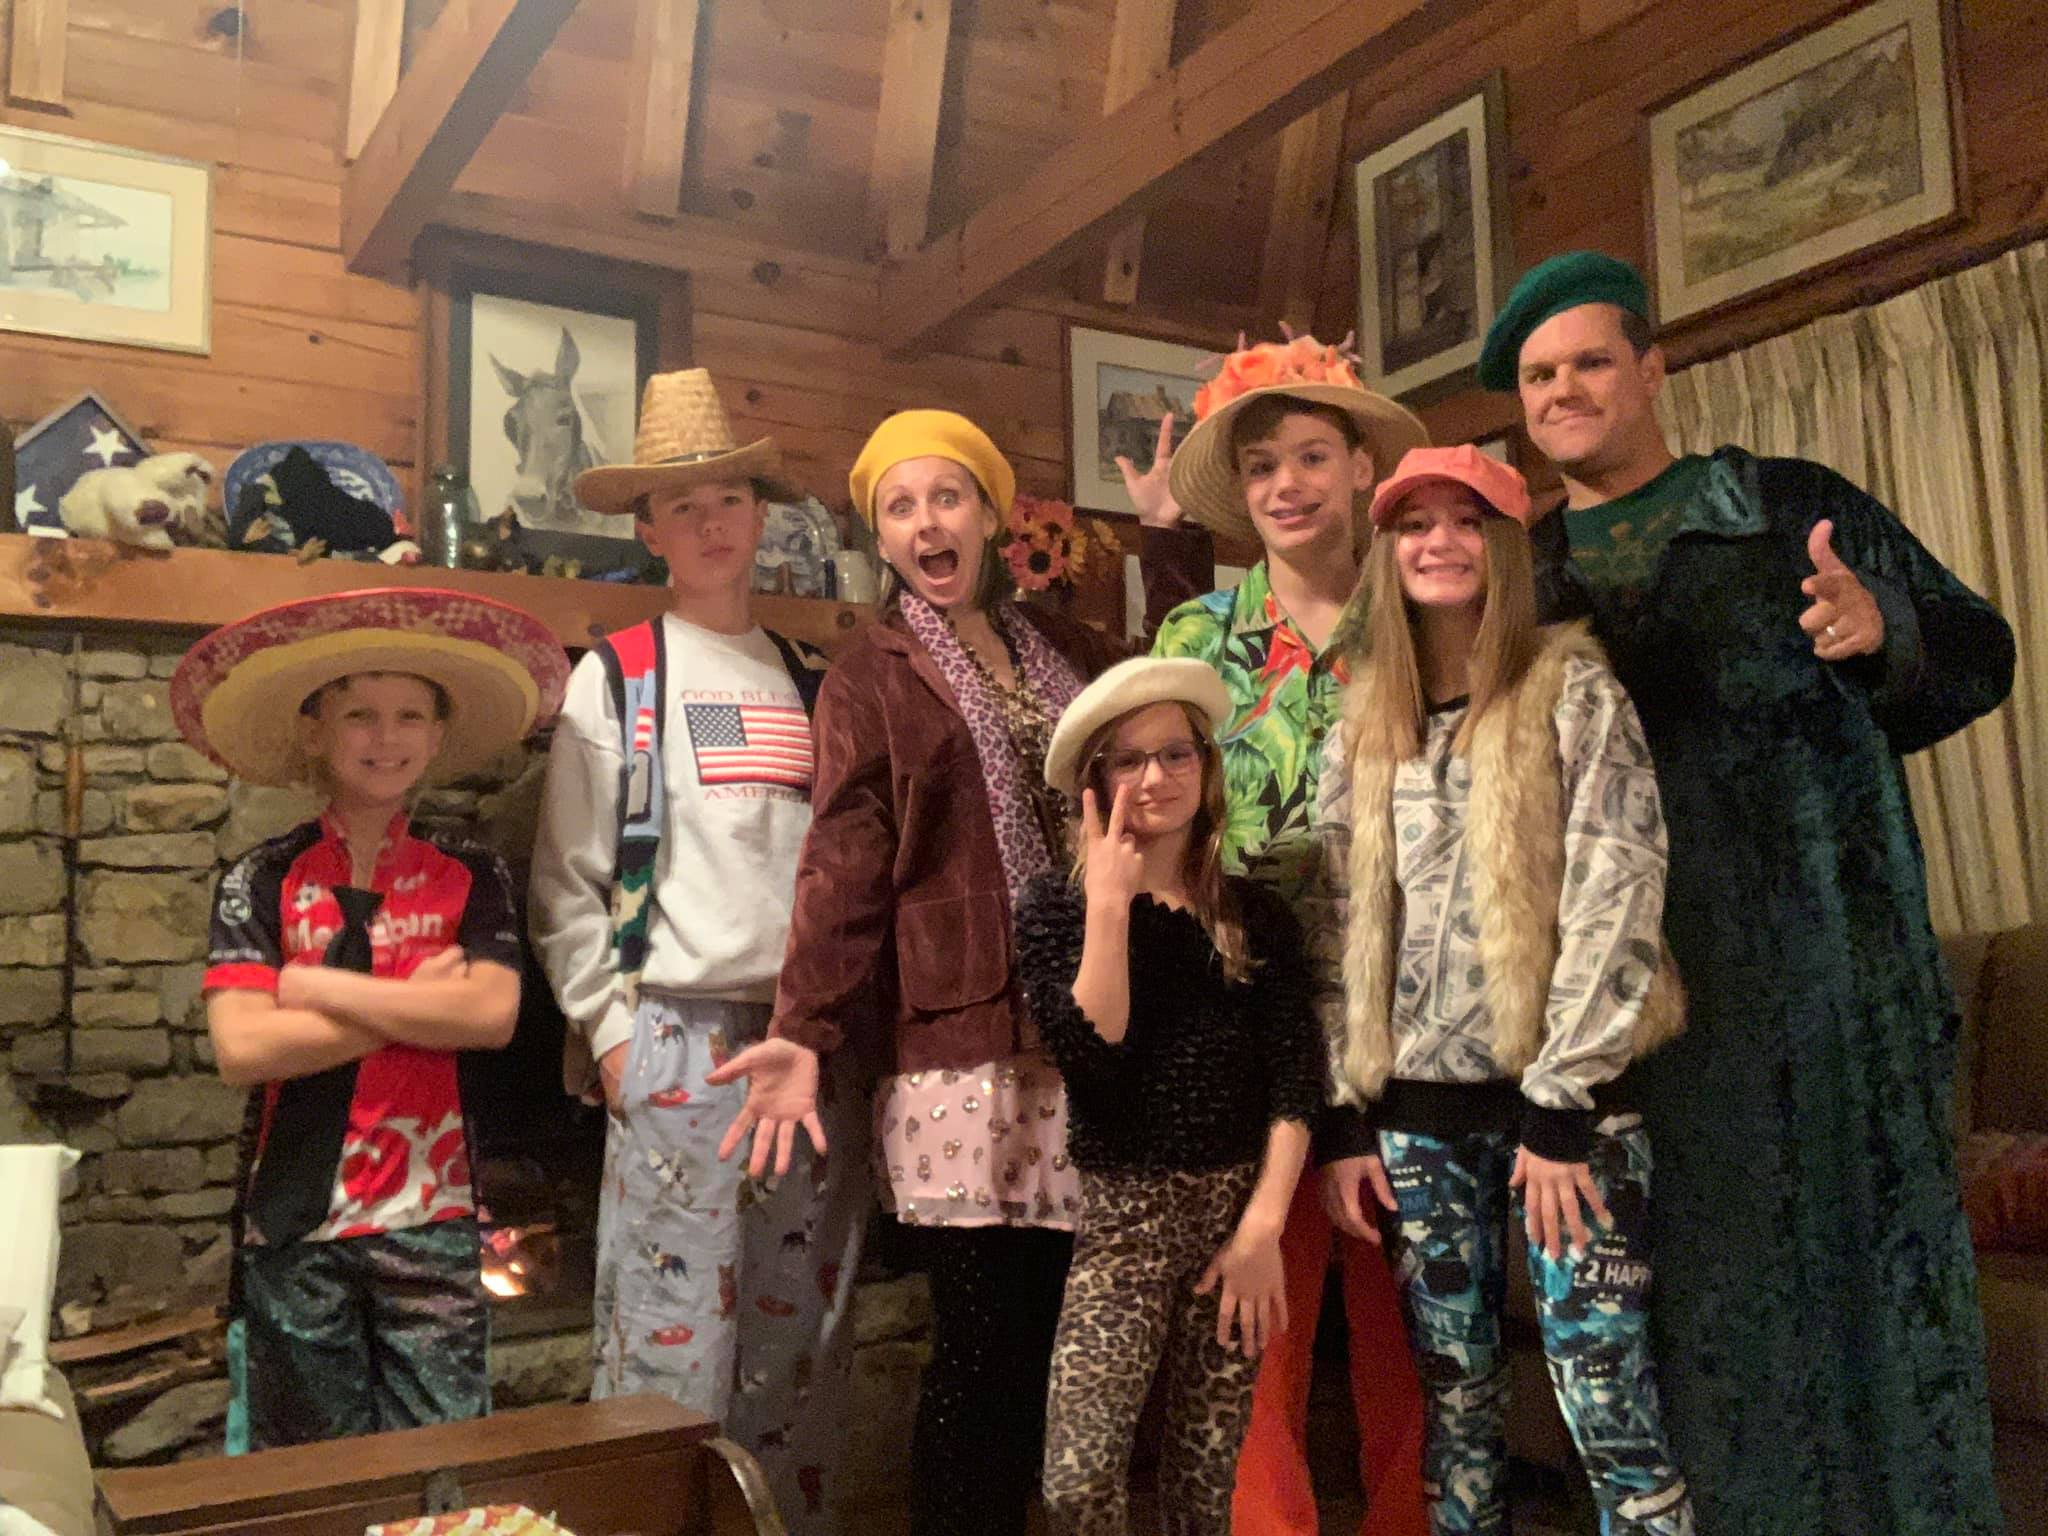 family dressed up in crazy costumes